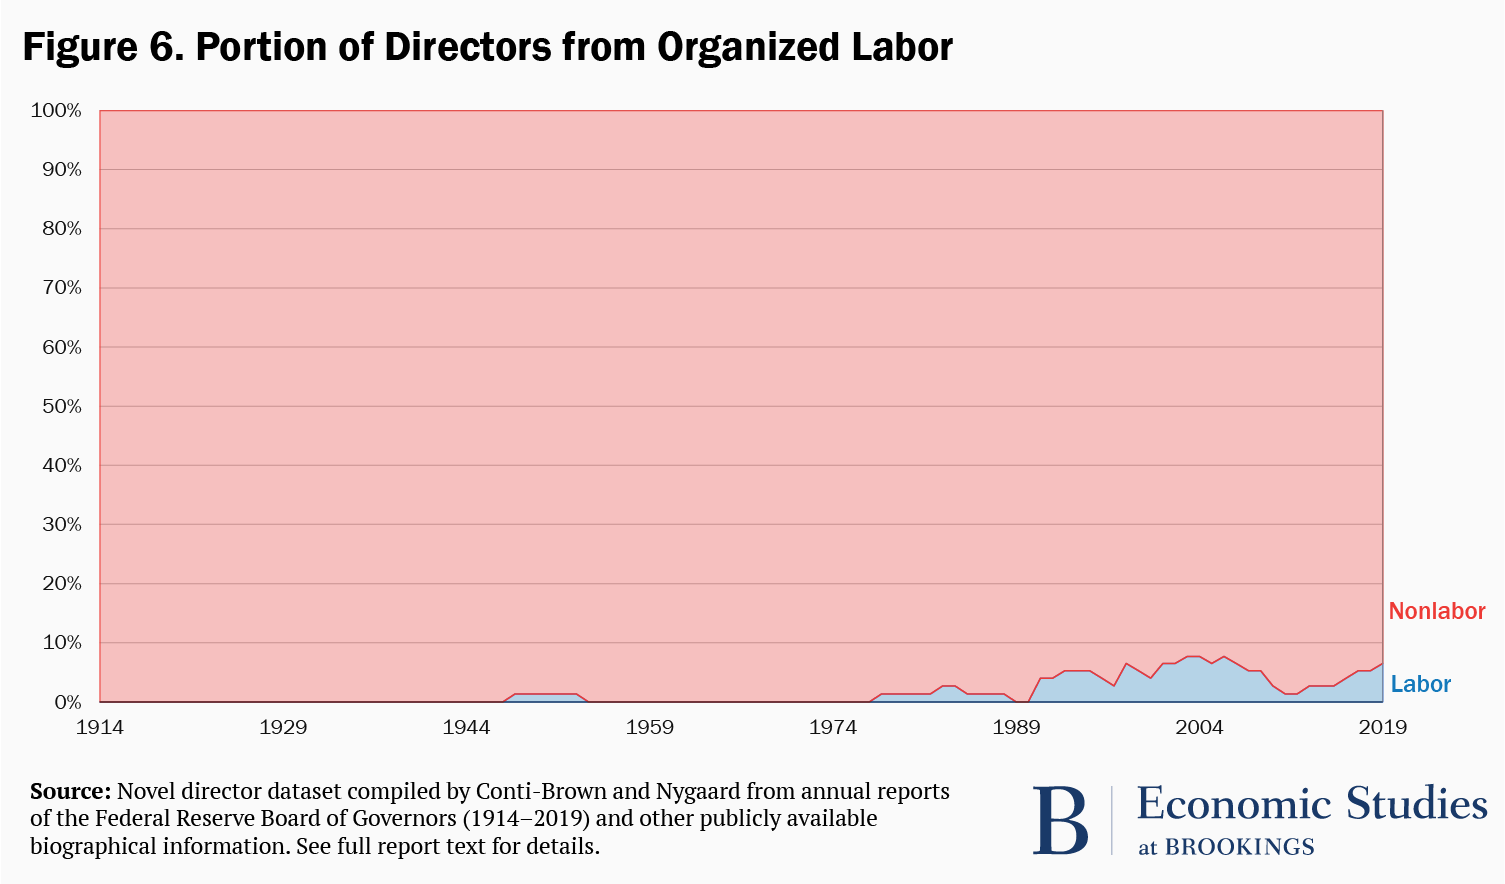 Figure 6. Portion of directors from organized labor